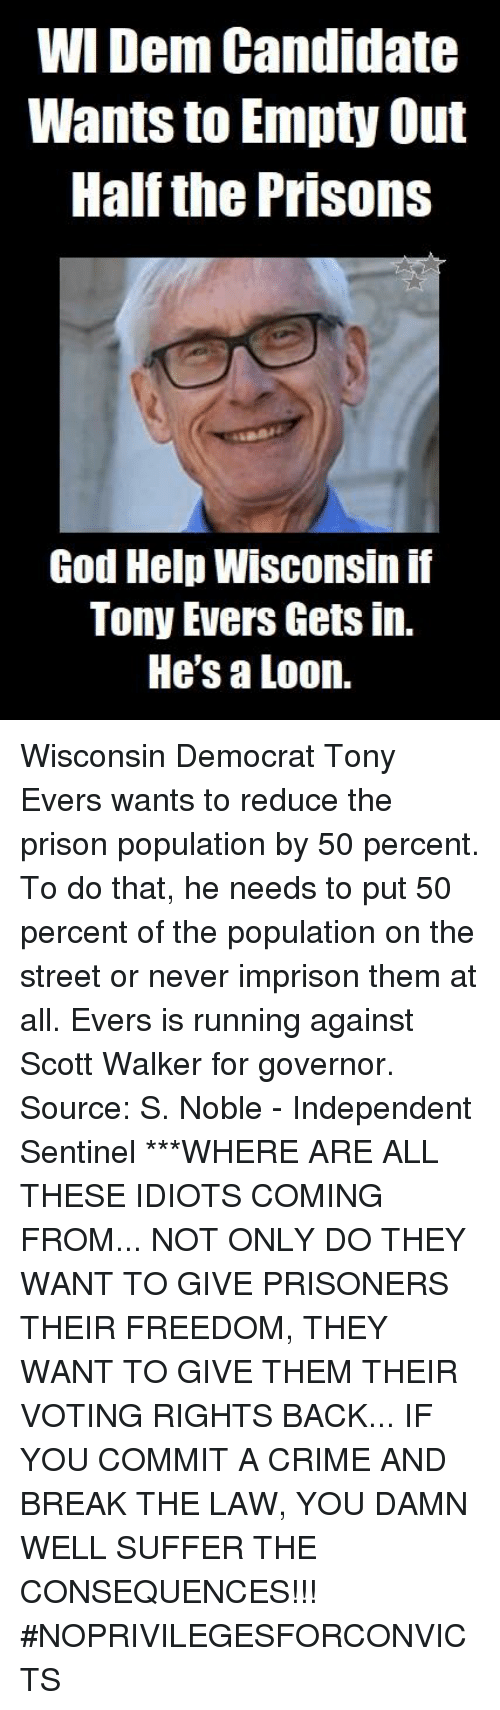 Crime, God, and Memes: WI Dem Candidate  Wants to Empty Out  Half the Prisons  God Help Wisconsin if  Tony Evers Gets in.  He's a Loon. Wisconsin Democrat Tony Evers wants to reduce the prison population by 50 percent. To do that, he needs to put 50 percent of the population on the street or never imprison them at all.  Evers is running against Scott Walker for governor.  Source: S. Noble - Independent Sentinel  ***WHERE ARE ALL THESE IDIOTS COMING FROM... NOT ONLY DO THEY WANT TO GIVE PRISONERS THEIR FREEDOM, THEY WANT TO GIVE THEM THEIR VOTING RIGHTS BACK...   IF YOU COMMIT A CRIME AND BREAK THE LAW, YOU DAMN WELL SUFFER THE CONSEQUENCES!!! #NOPRIVILEGESFORCONVICTS